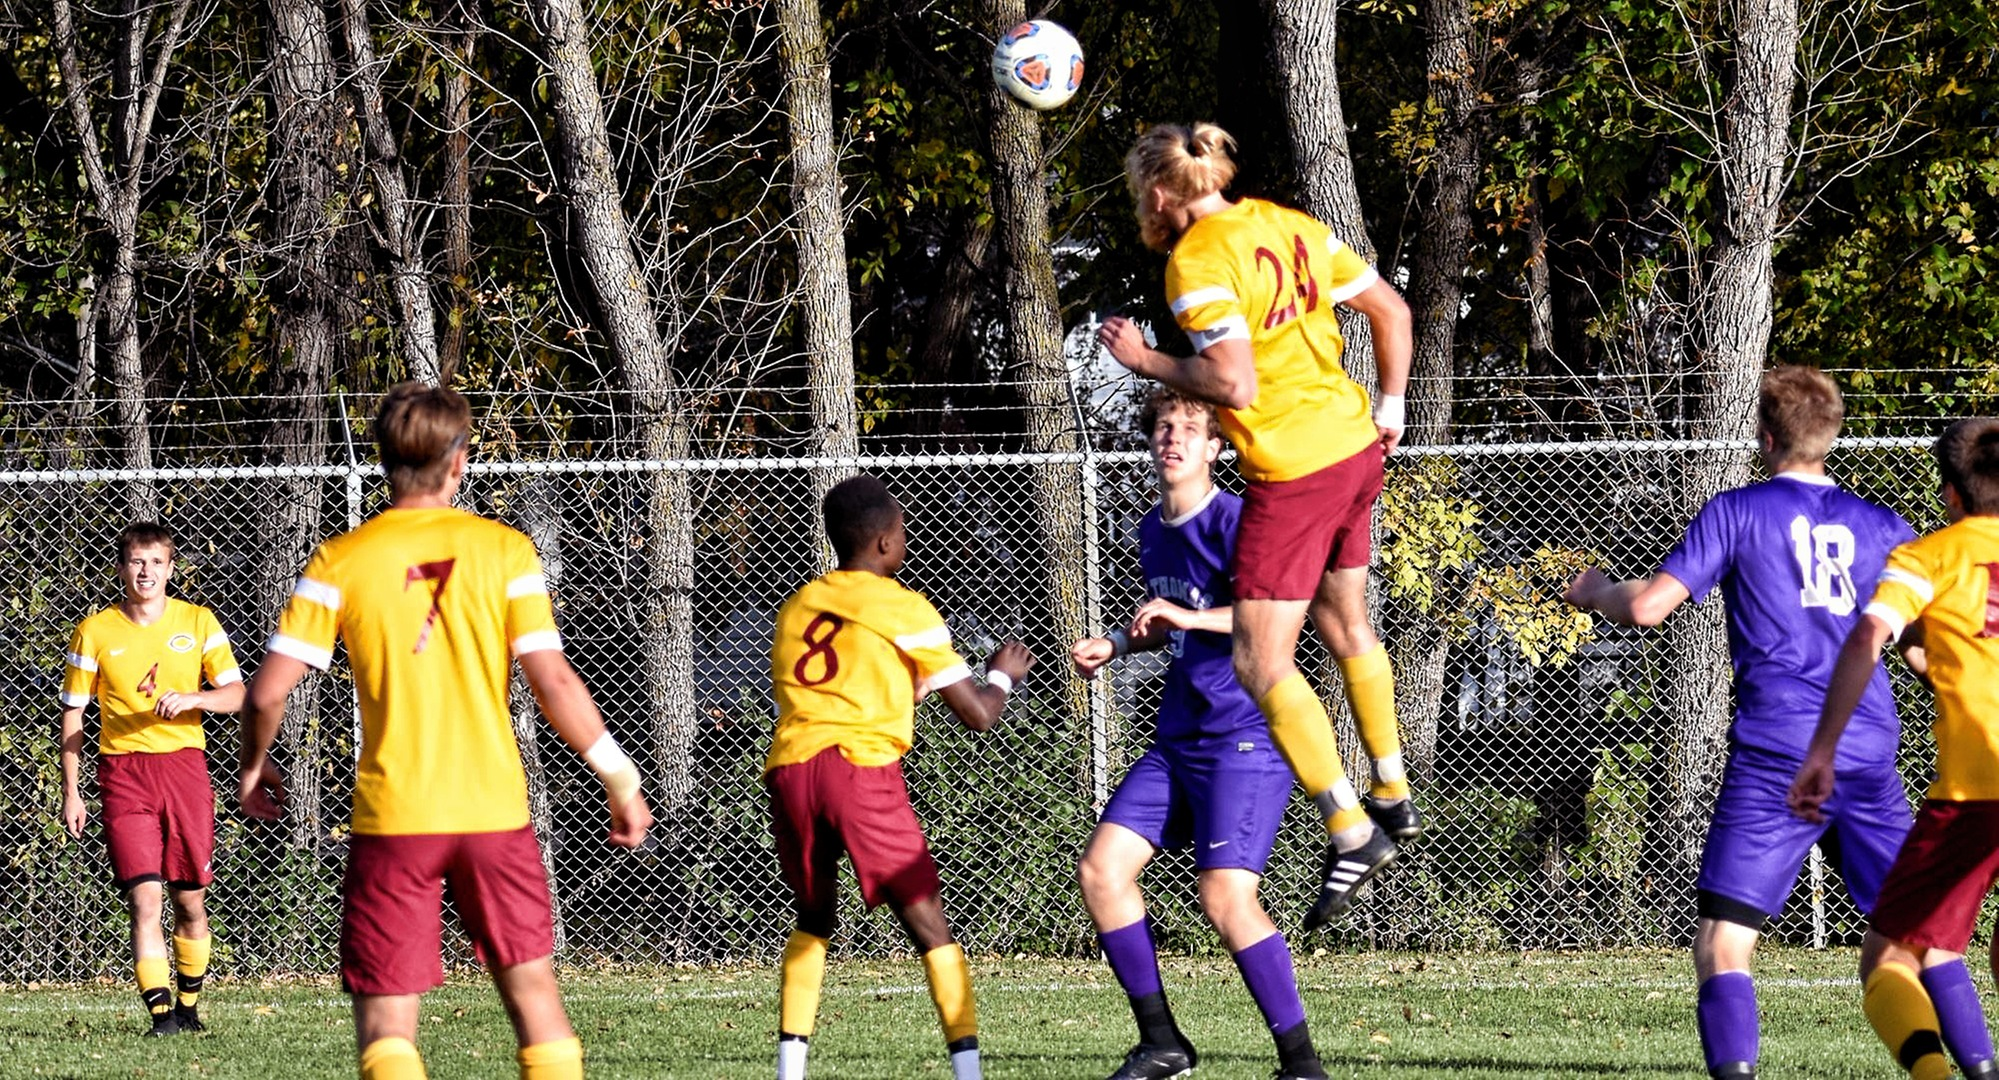 Junior Austin Peterson scored Concordia's lone goal on a header in the Cobbers' 1-1 2OT tie at St. Olaf.